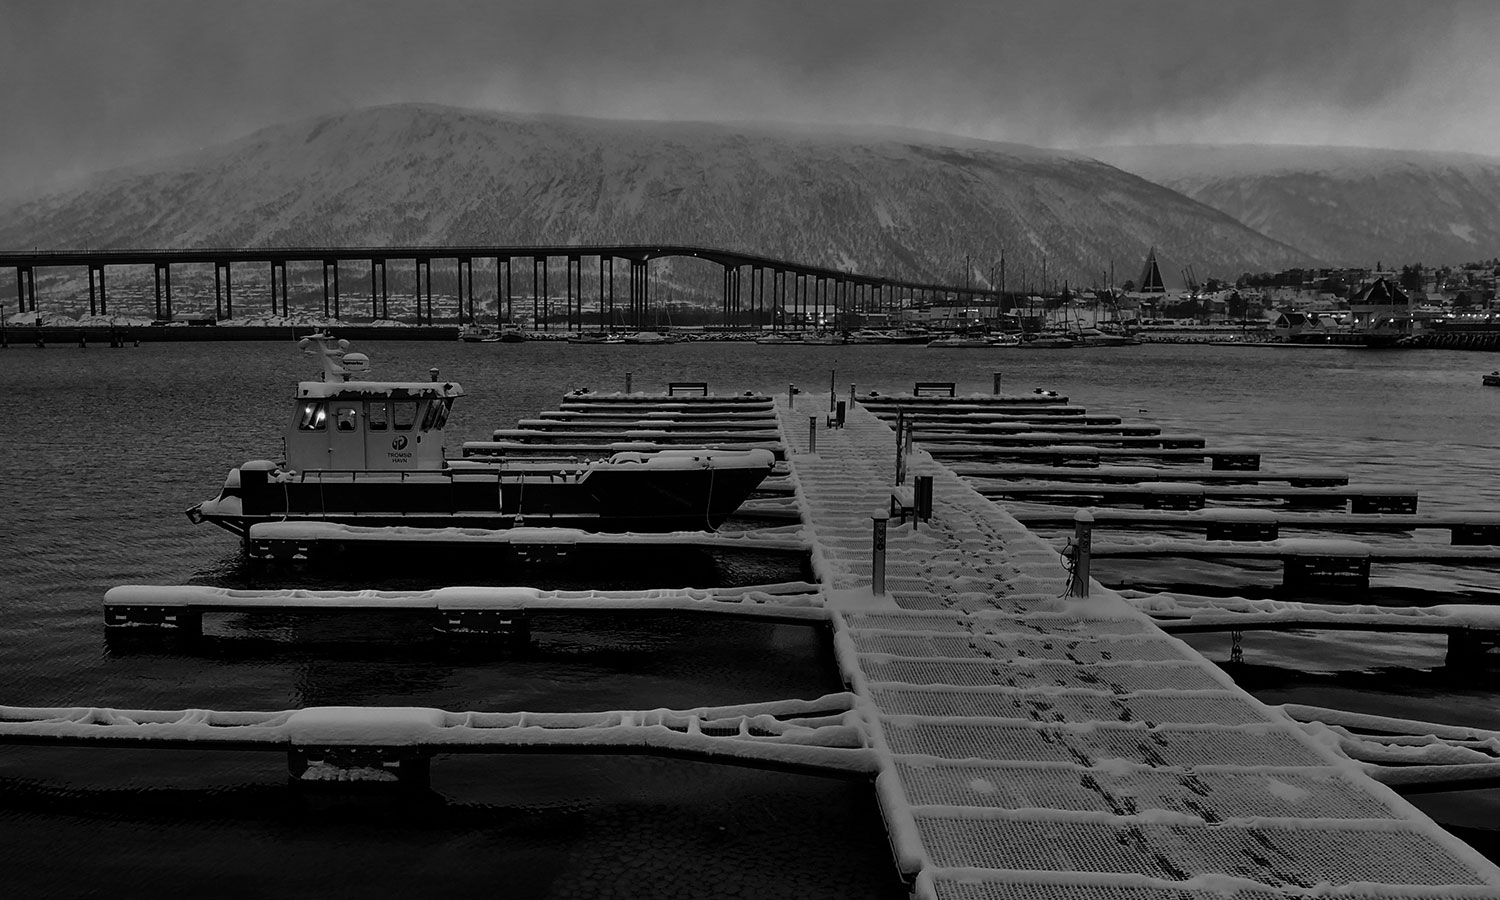 BW-3rd-place-Wasserman-10-BW-Tromso-Norway-Freezing-night-in-the-arctic-circle